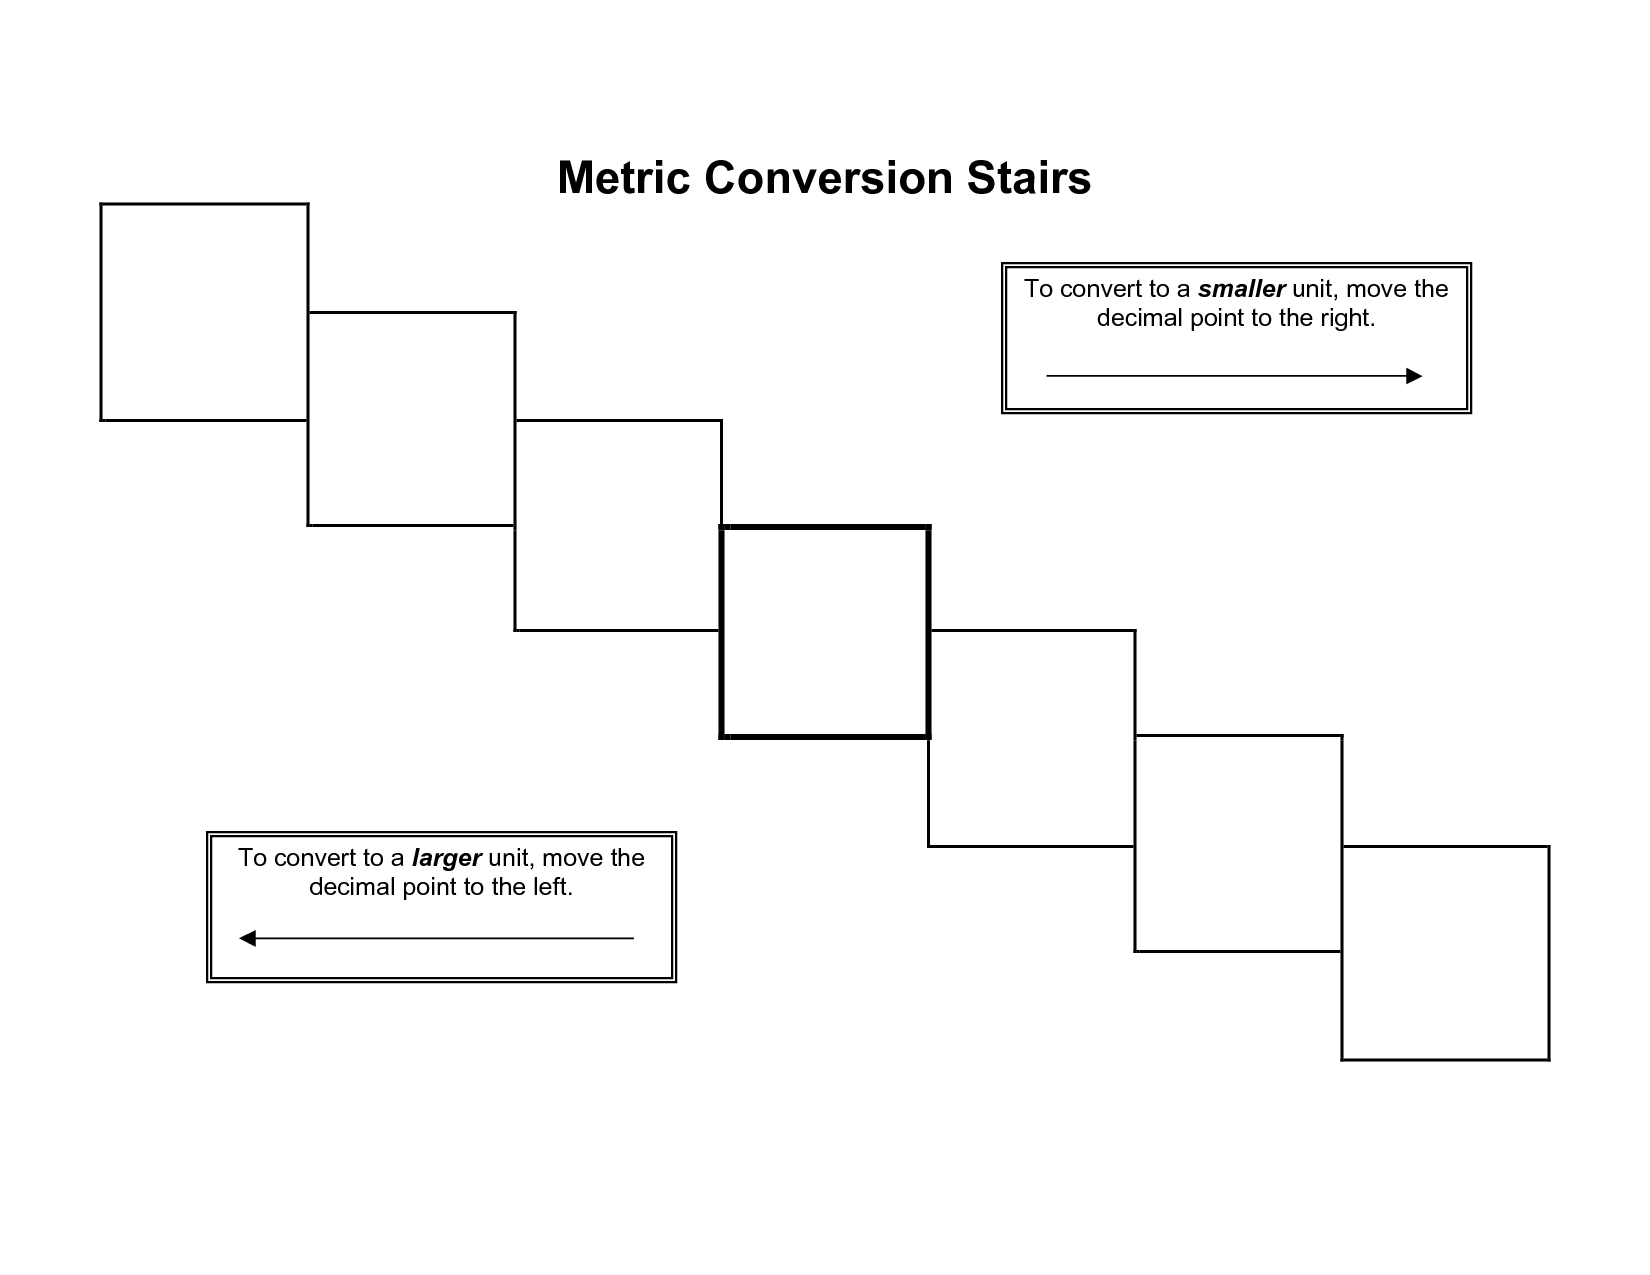 hight resolution of Metric Conversion Stairs   Metric conversions